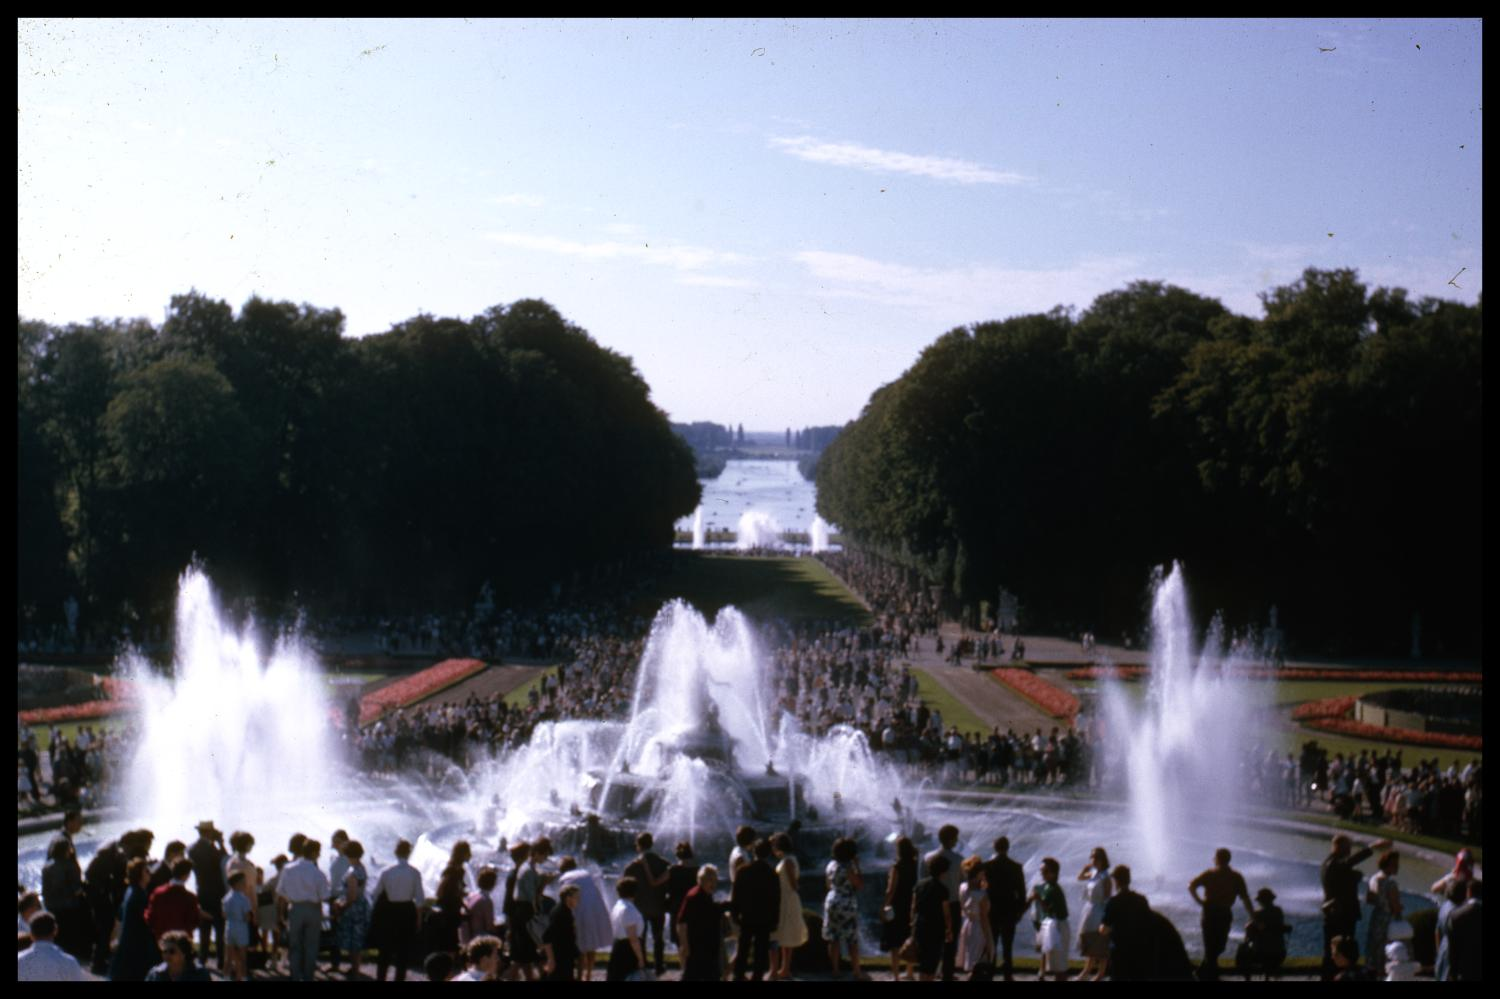 [Versailles Fountains]                                                                                                      [Sequence #]: 1 of 1